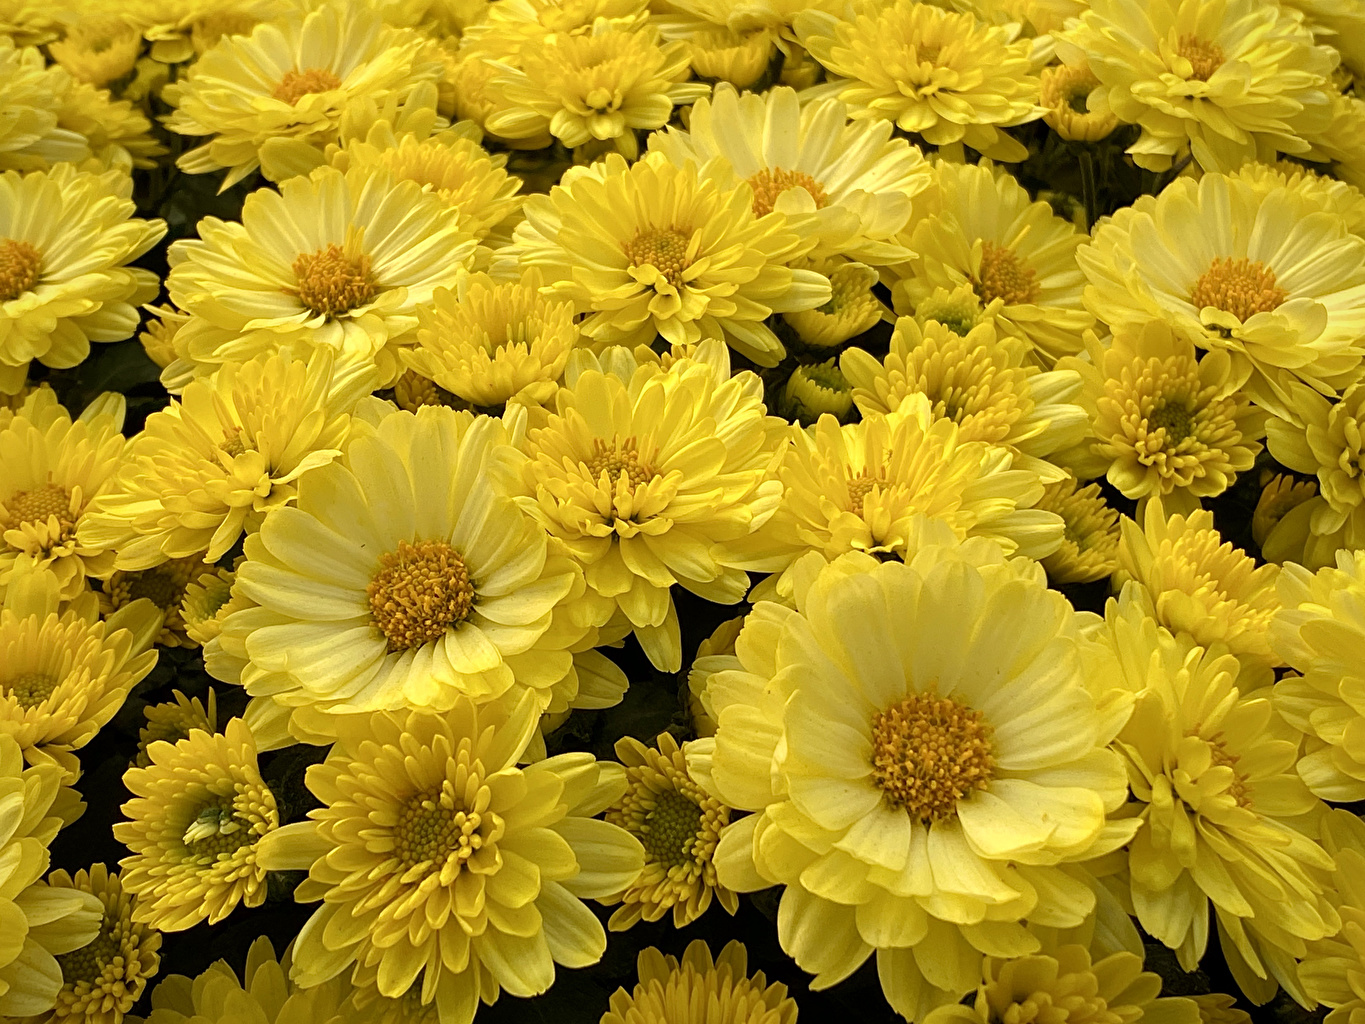 Photos Yellow Asters Flowers Many Closeup flower